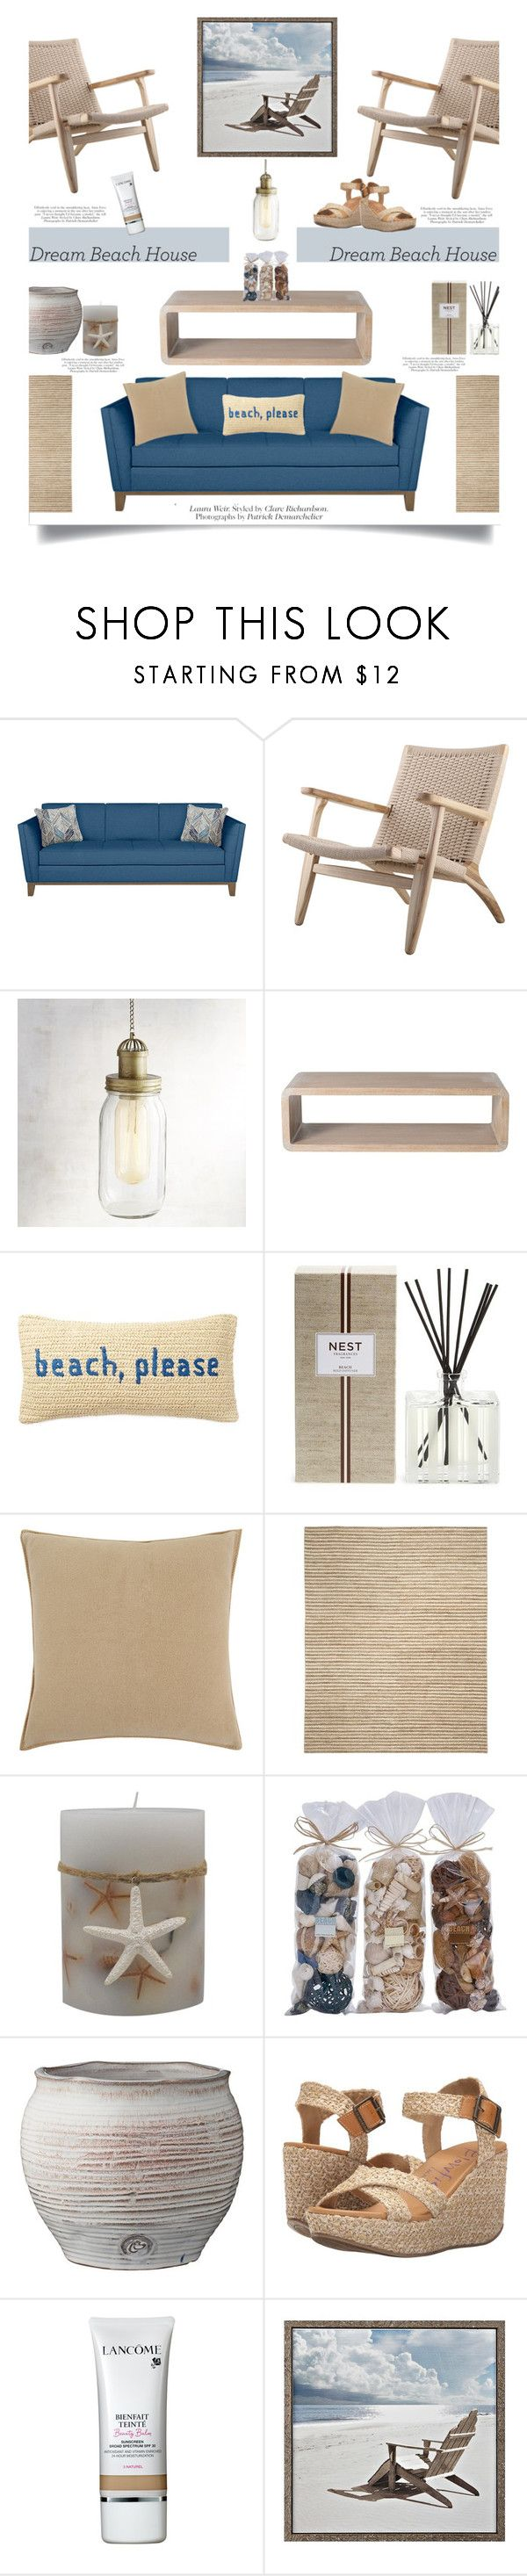 """Vacation Vibes: Dream Beach House'"" by dianefantasy ❤ liked on Polyvore featuring interior, interiors, interior design, home, home decor, interior decorating, Pier 1 Imports, McGuire, Nordstrom Rack and Nest Fragrances"